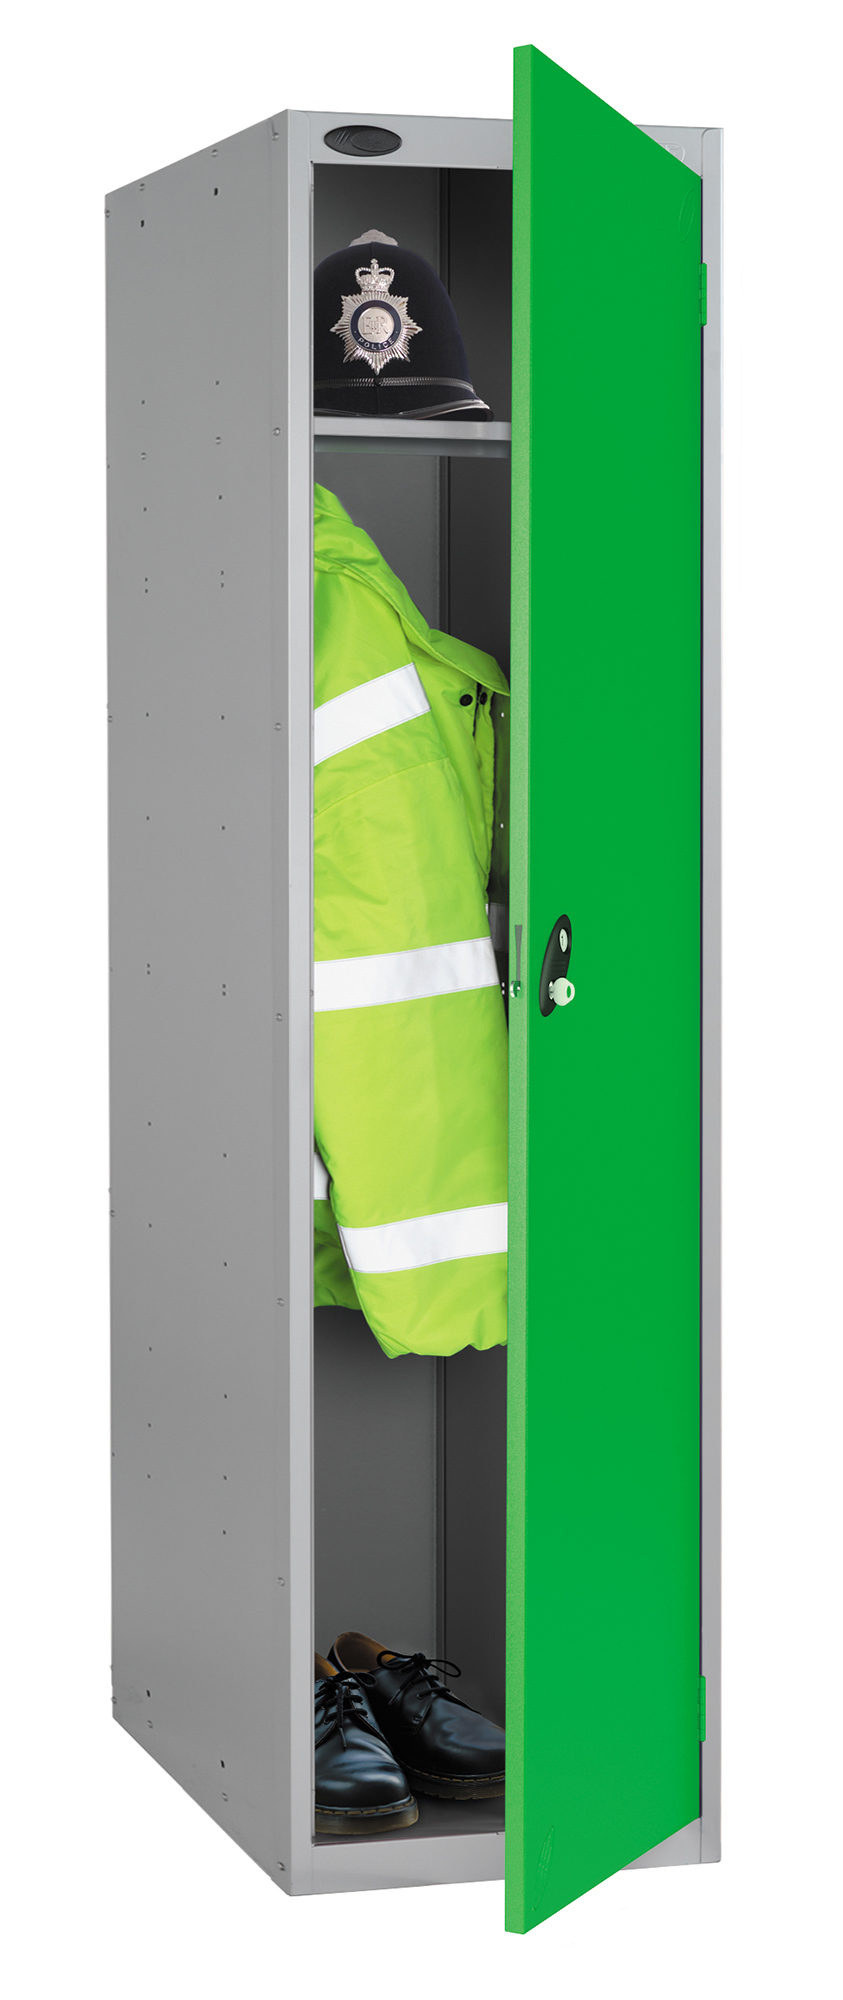 Probe high capacity police locker in green colour is designed to accommodate personal body armor